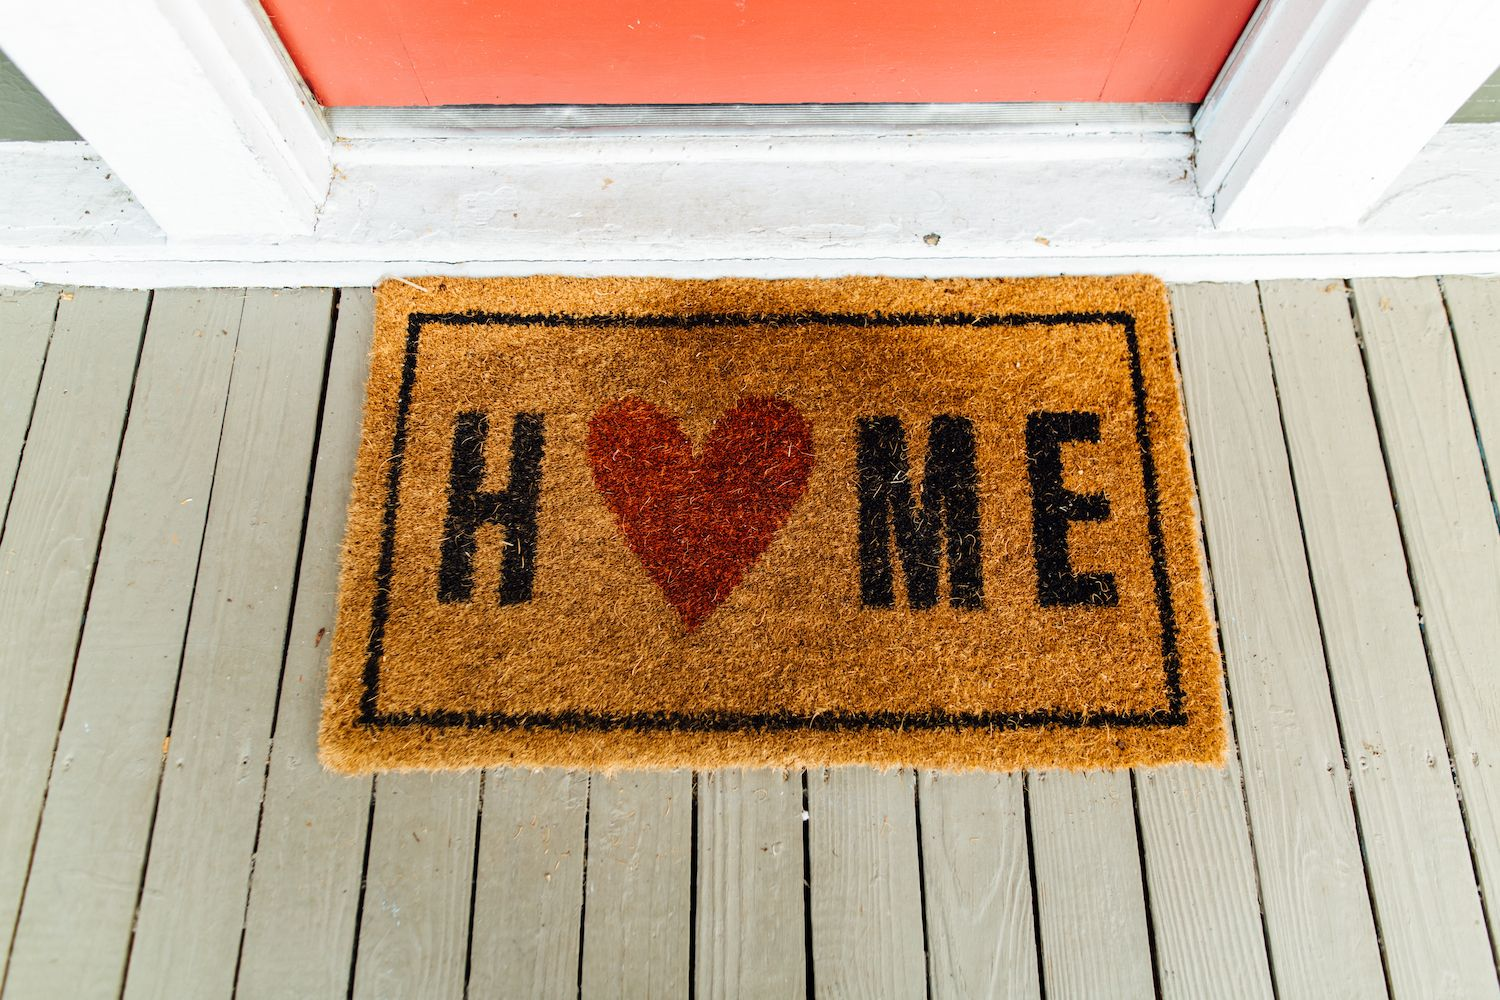 What makes a happy home?